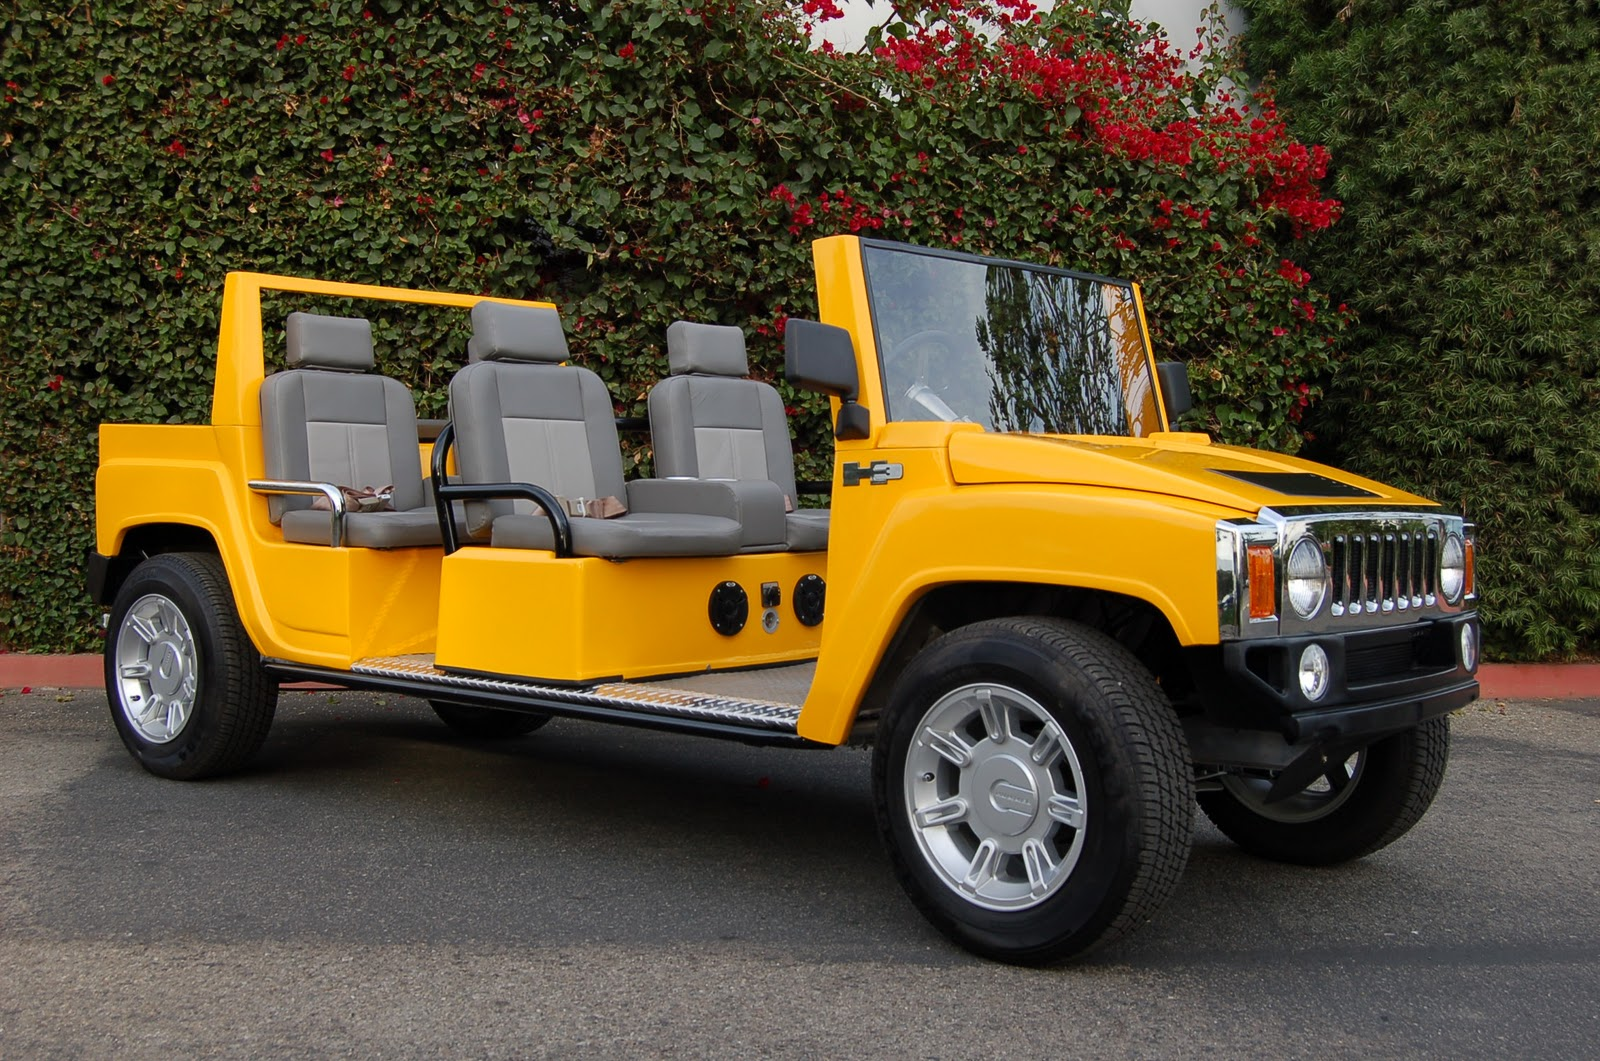 New 2012 Car Review: Sports car Hummer wallpaper, Pictures ...